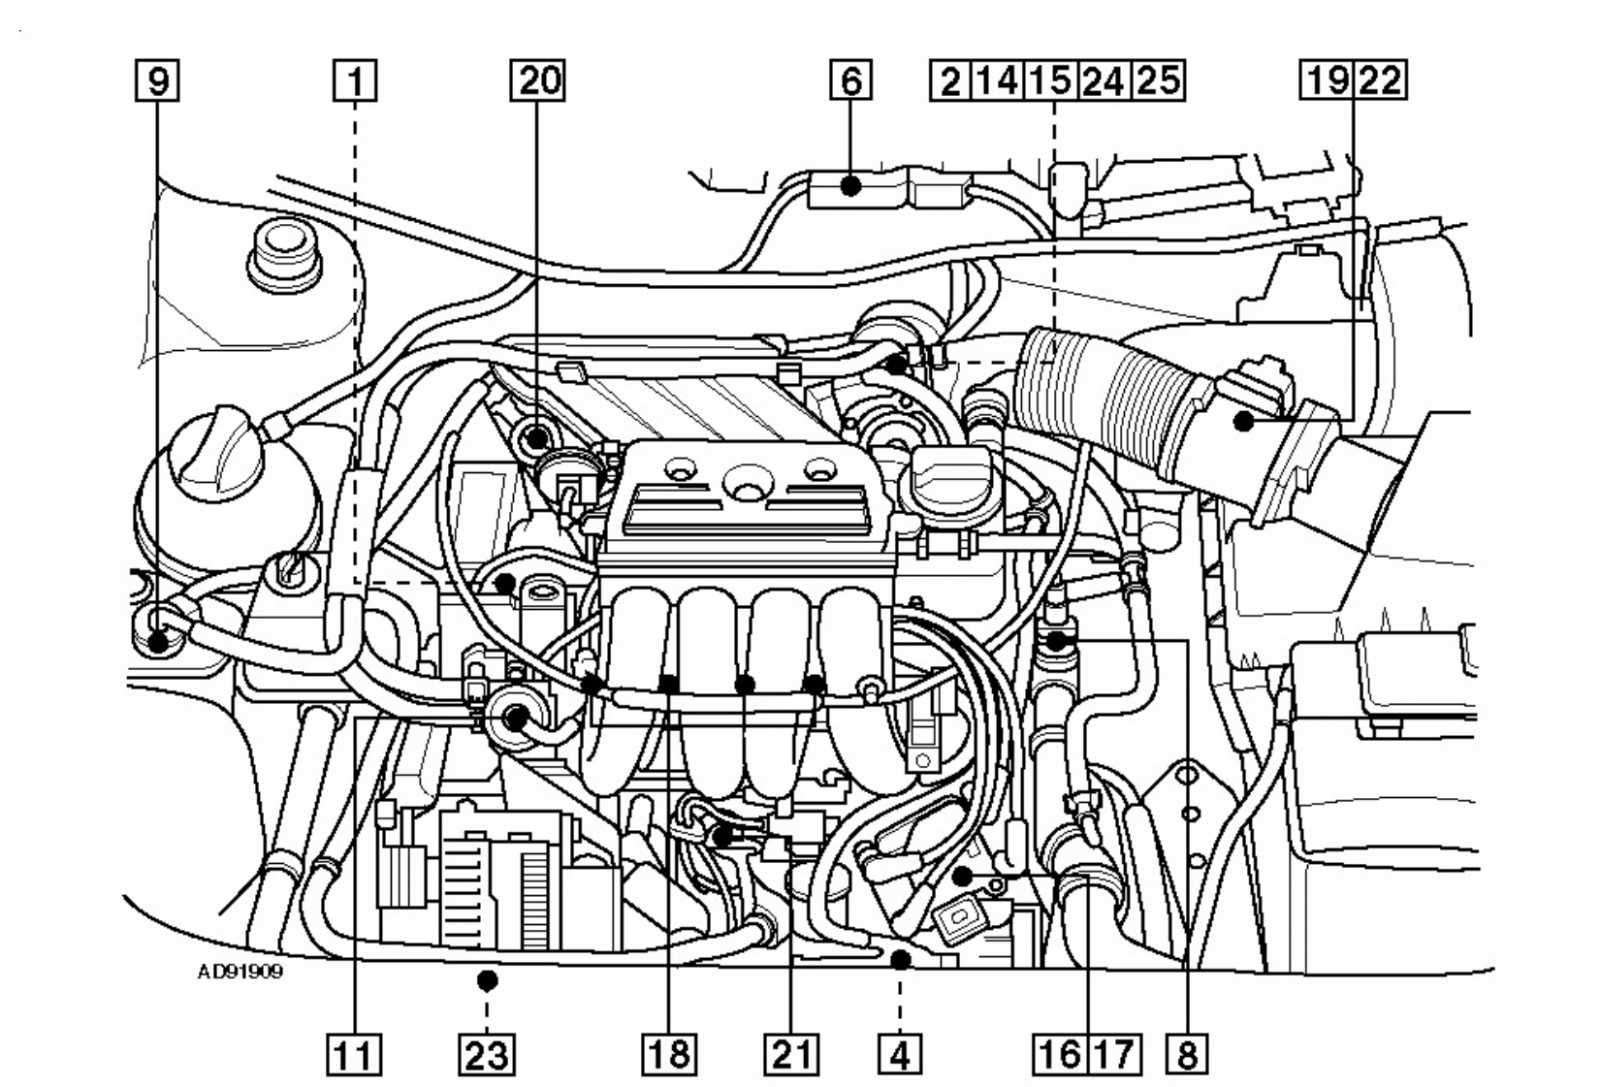 6 vw jetta tdi engine diagram - wiring diagram rows engine diagram 2001  jetta gti in 2020 | vw up, diagram, vw jetta  pinterest